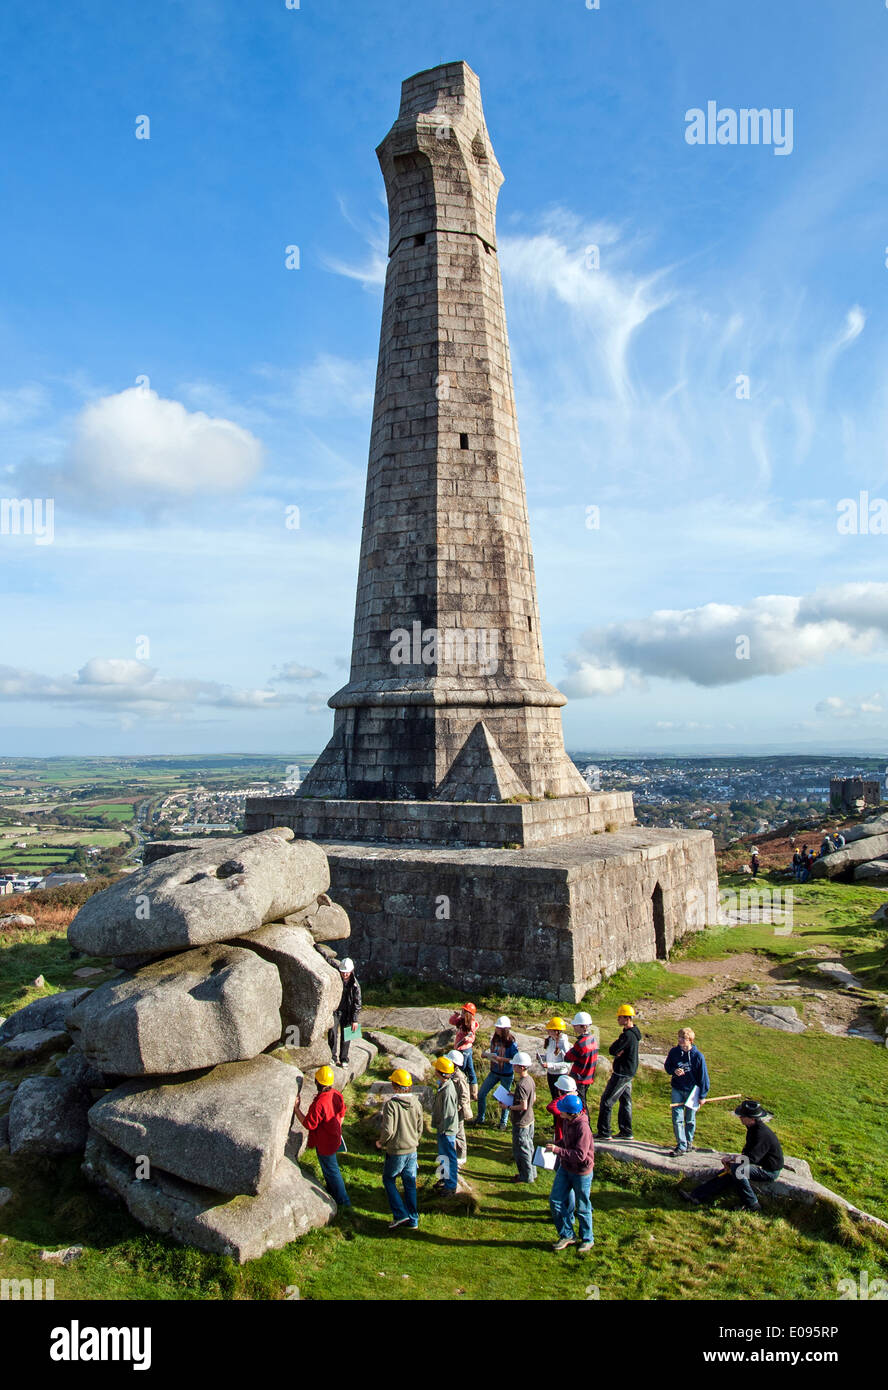 a school filed trip at carn brea in cornwall, uk - Stock Image